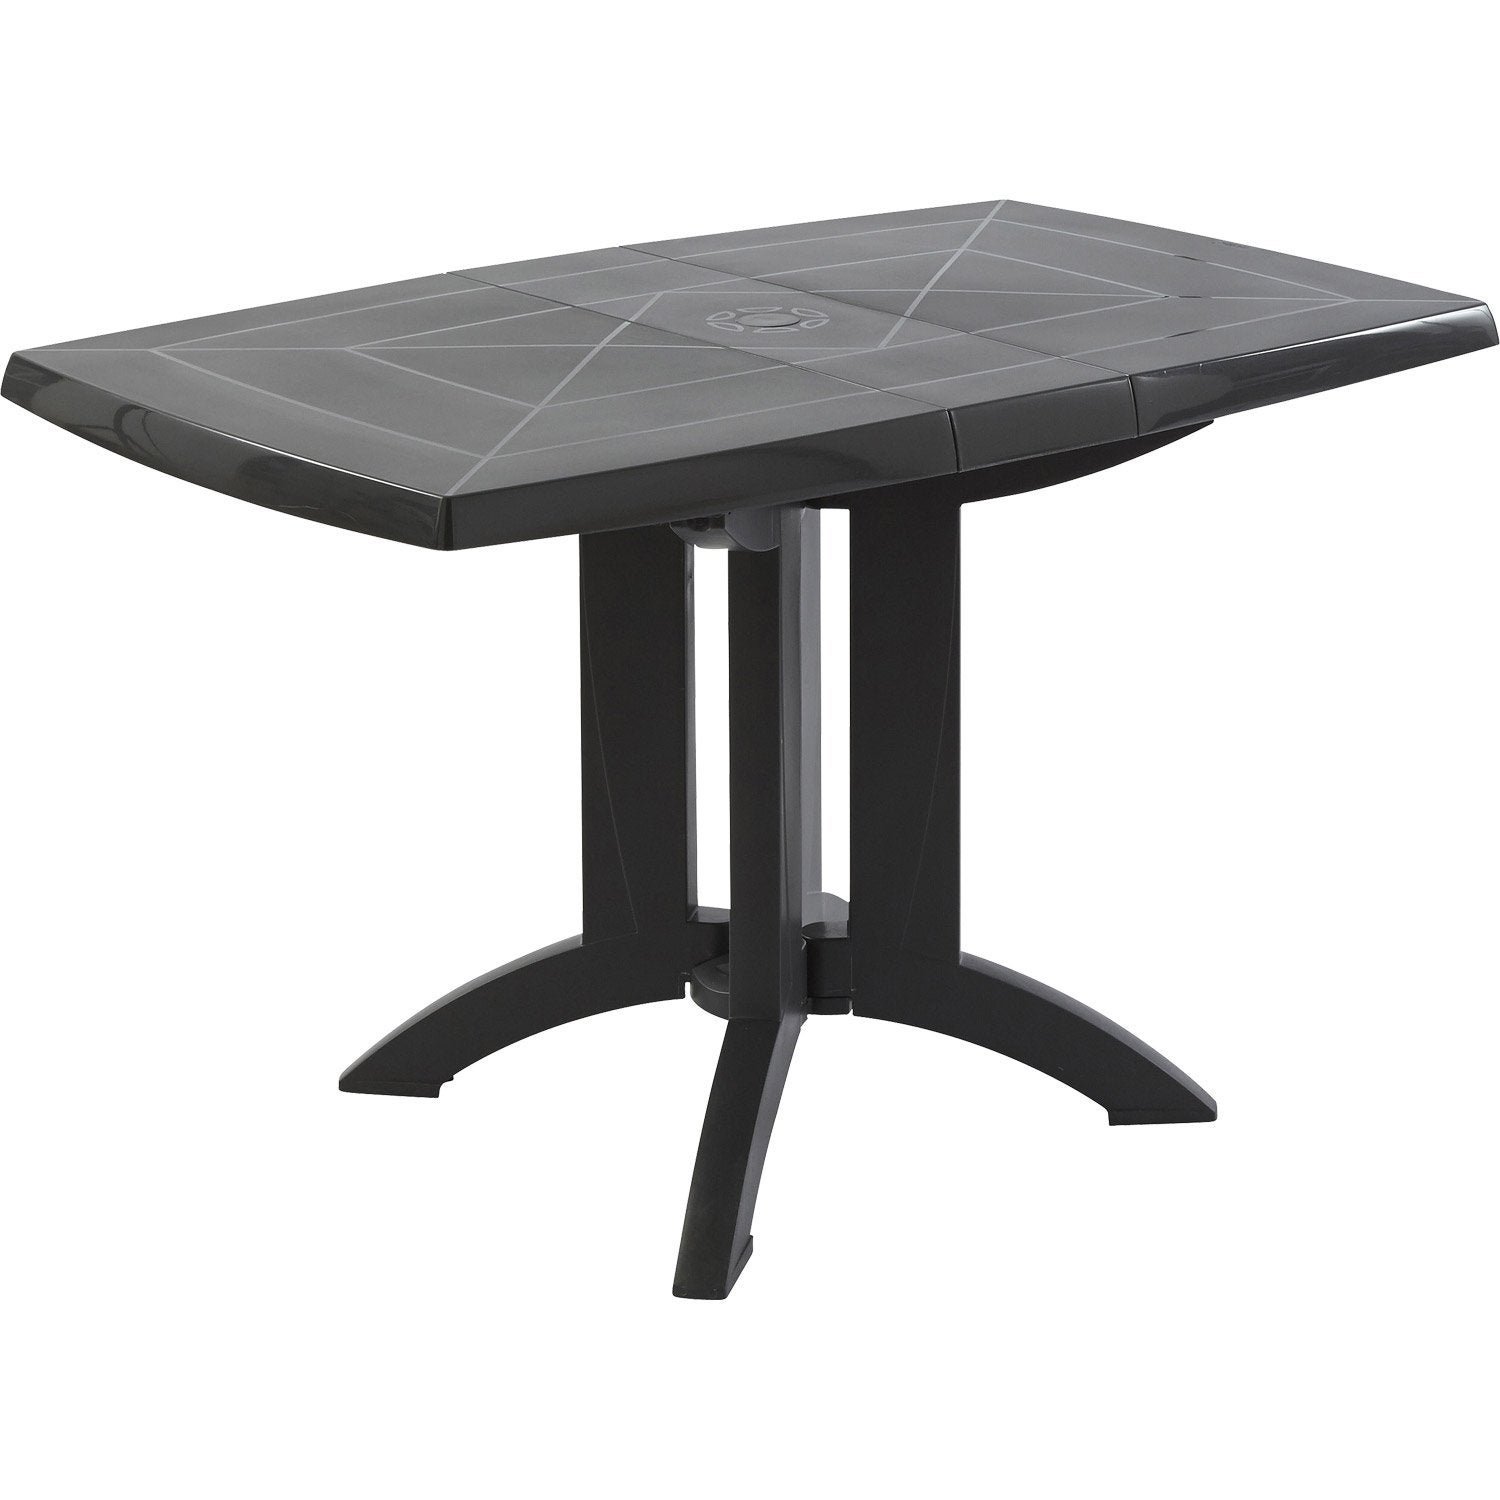 Table de jardin grosfillex v ga rectangulaire anthracite 4 - Table rabattable leroy merlin ...